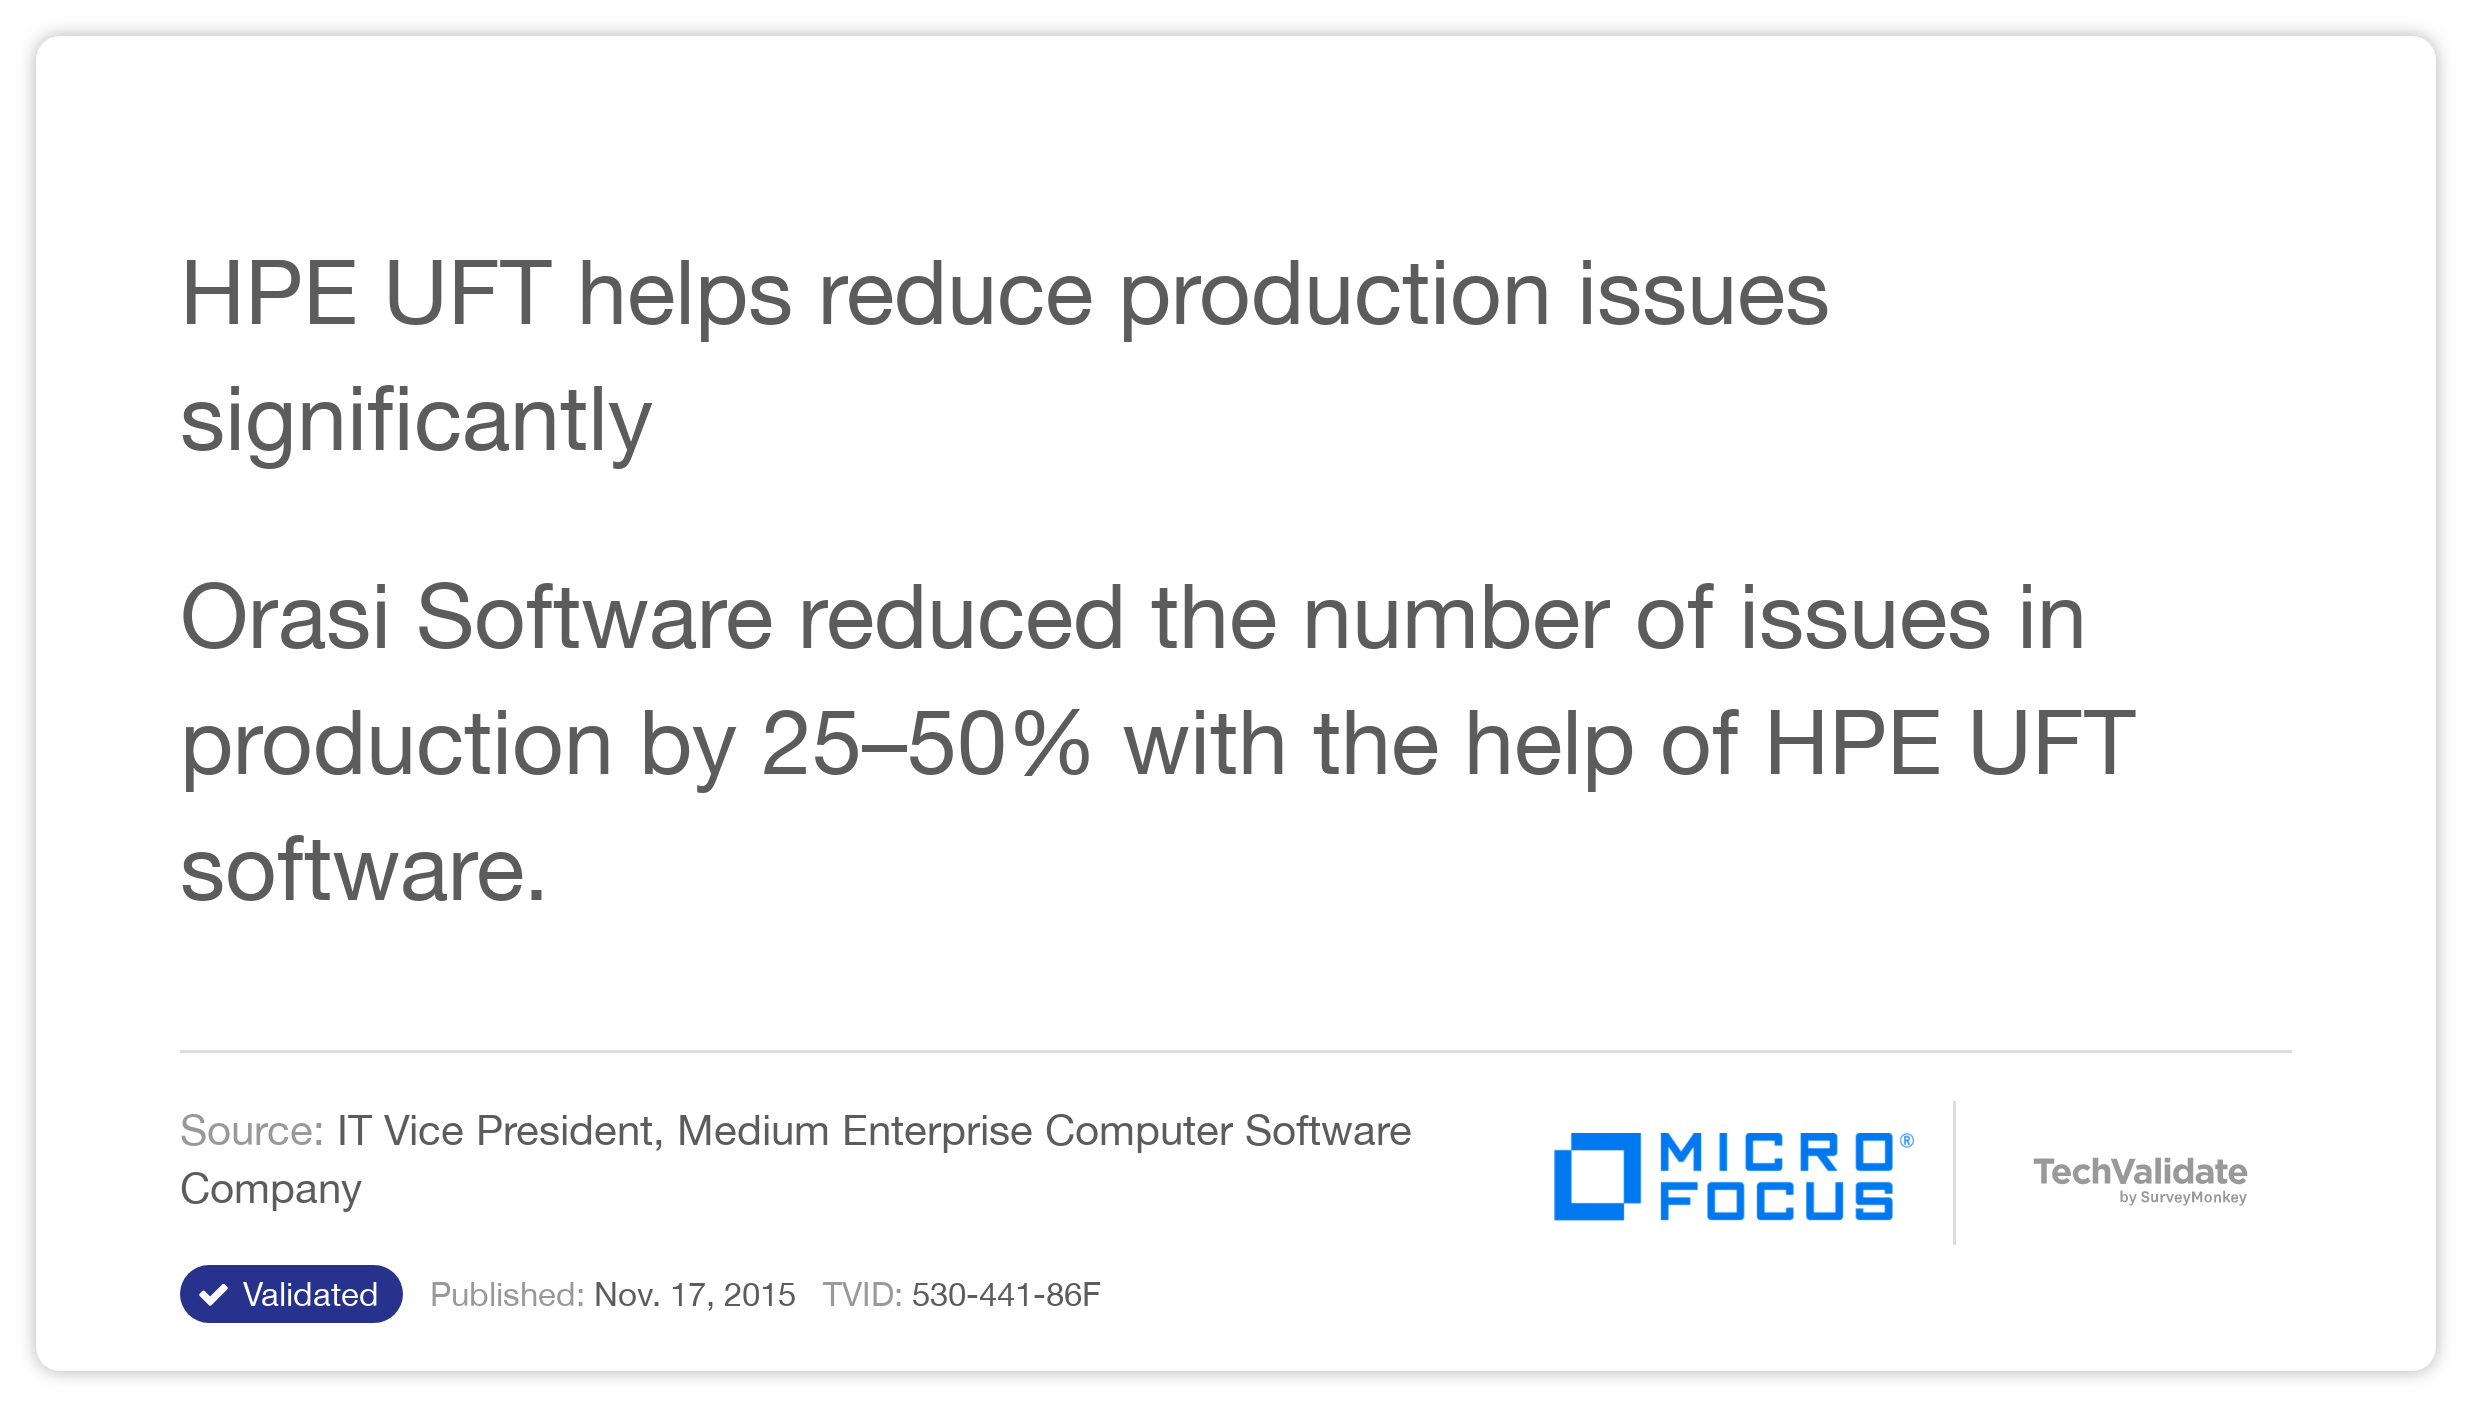 HP UFT helps reduce production issues significantly